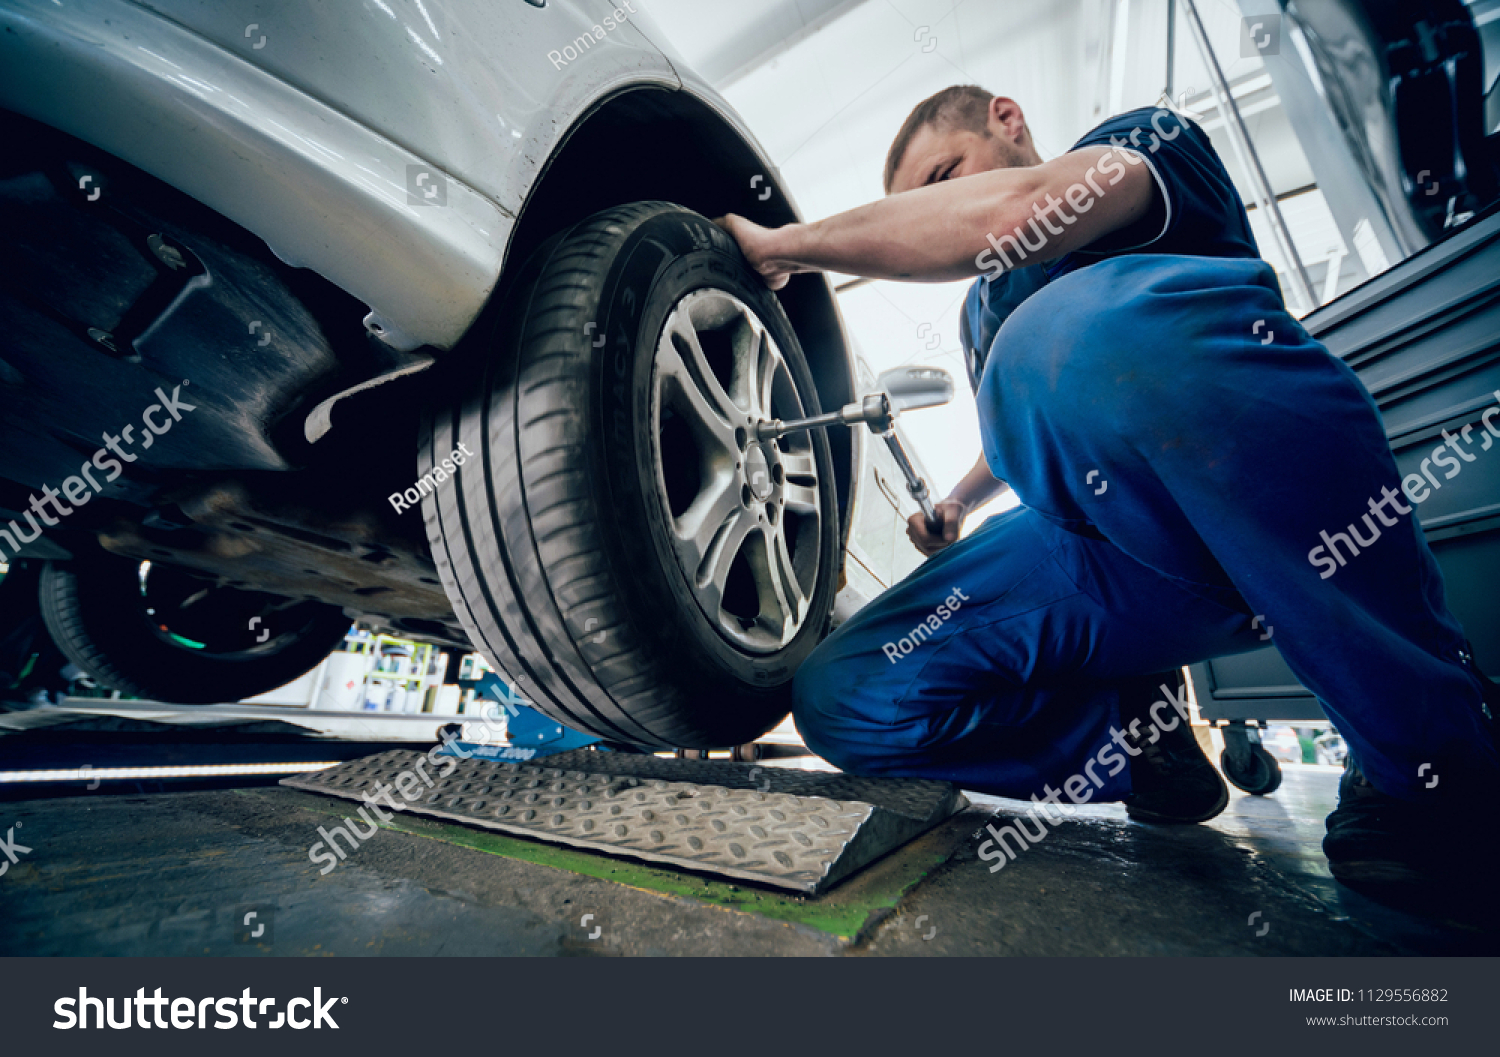 Automotive Suspension Test Brake Rolls Stock Photo Edit Now Auto Repair Mechanic Engine Brakes Service And In A Background